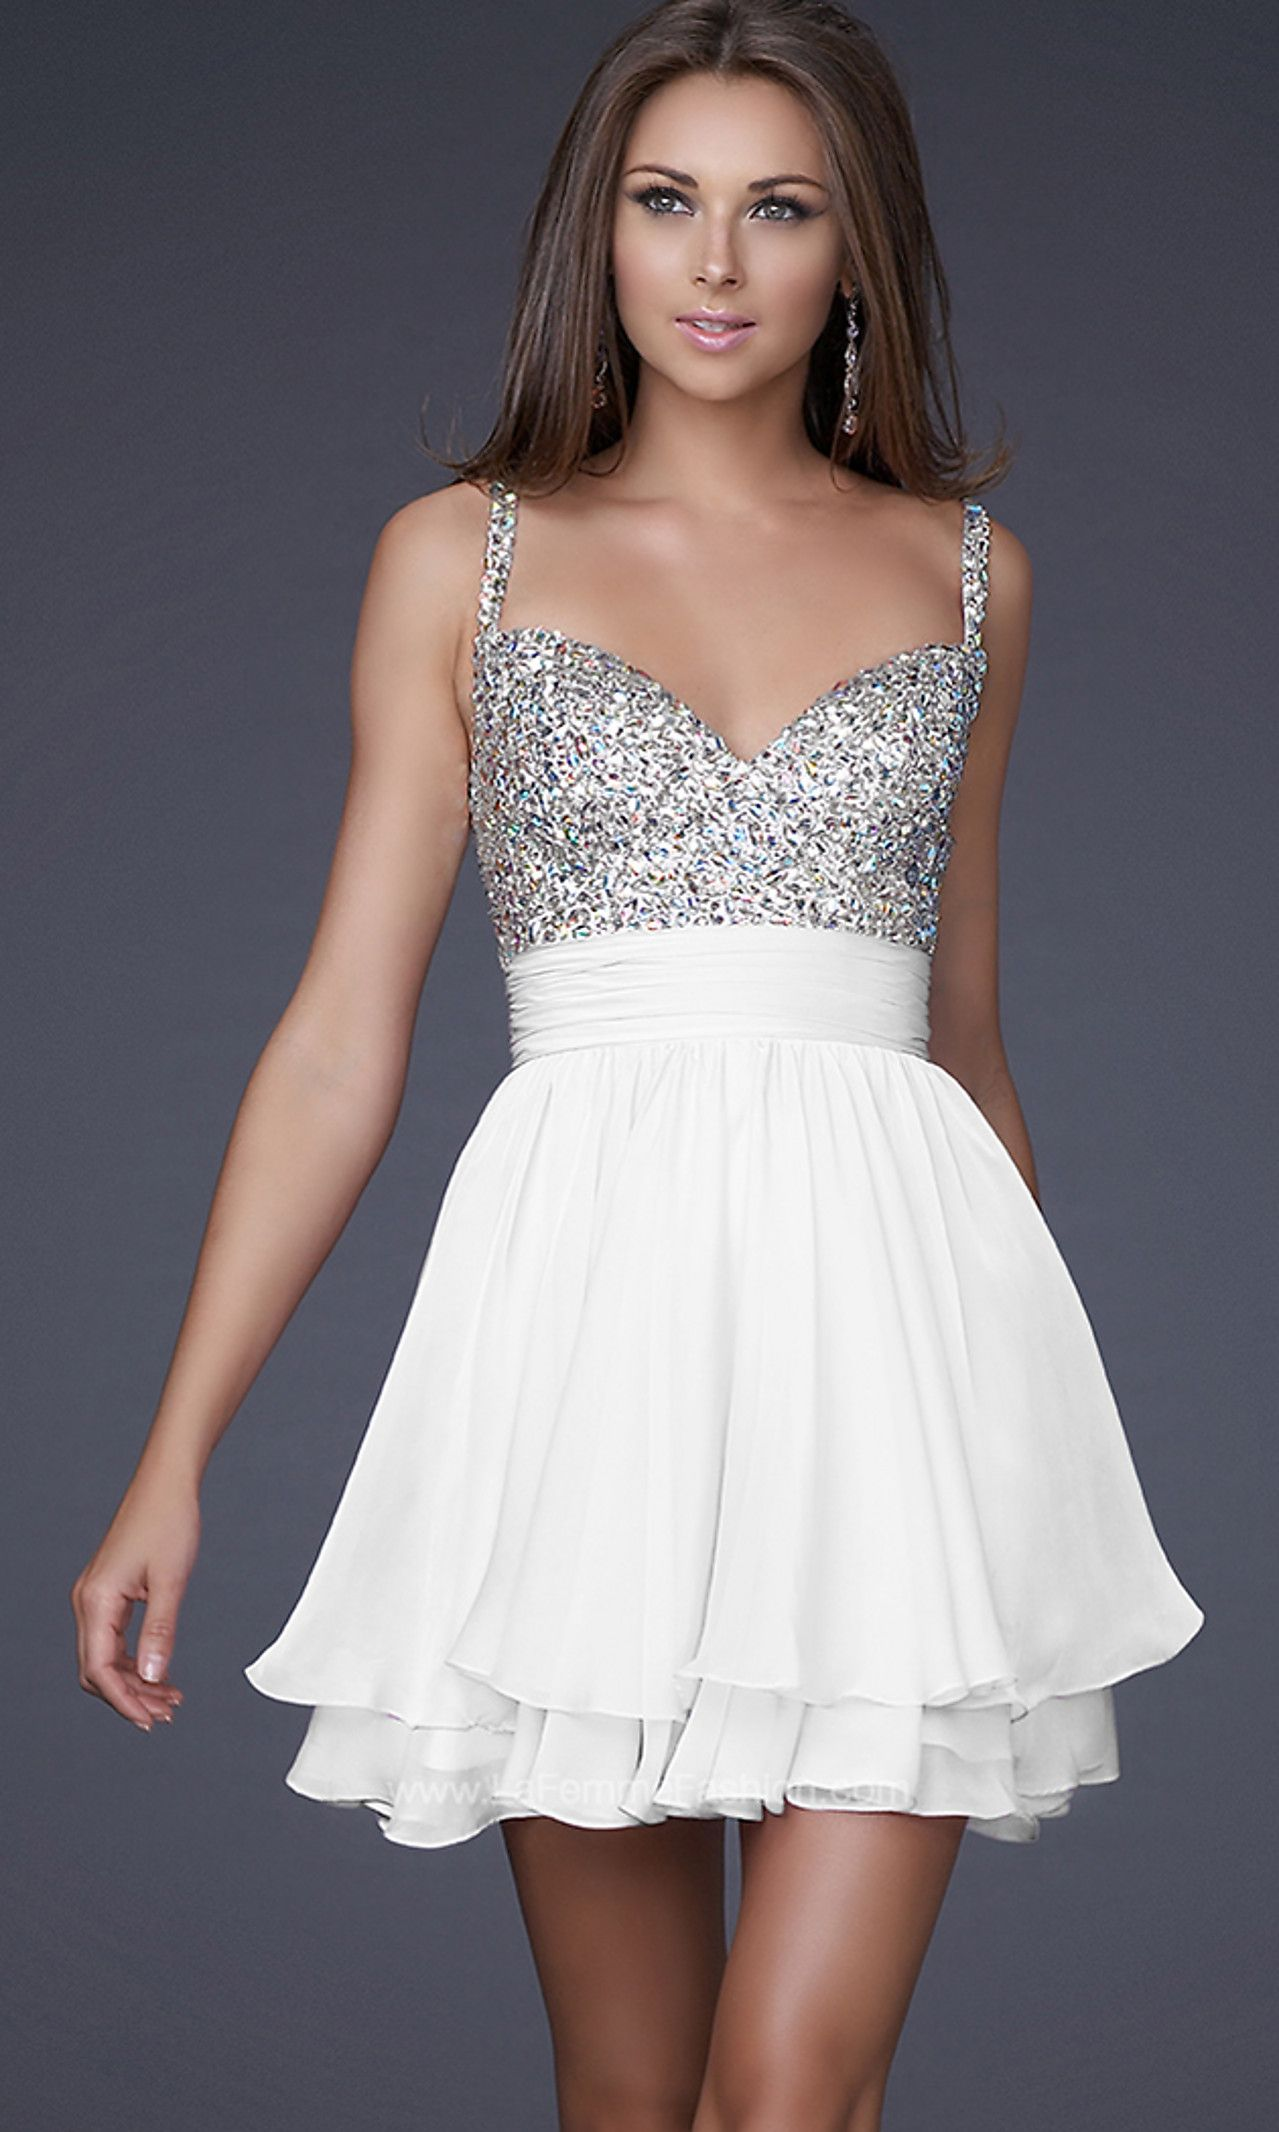 I Found It Too Expensive For Me But Still Nice To Dream Bachelorette Party Dress Cocktail Evening Dresses White Dresses Graduation [ 2132 x 1279 Pixel ]